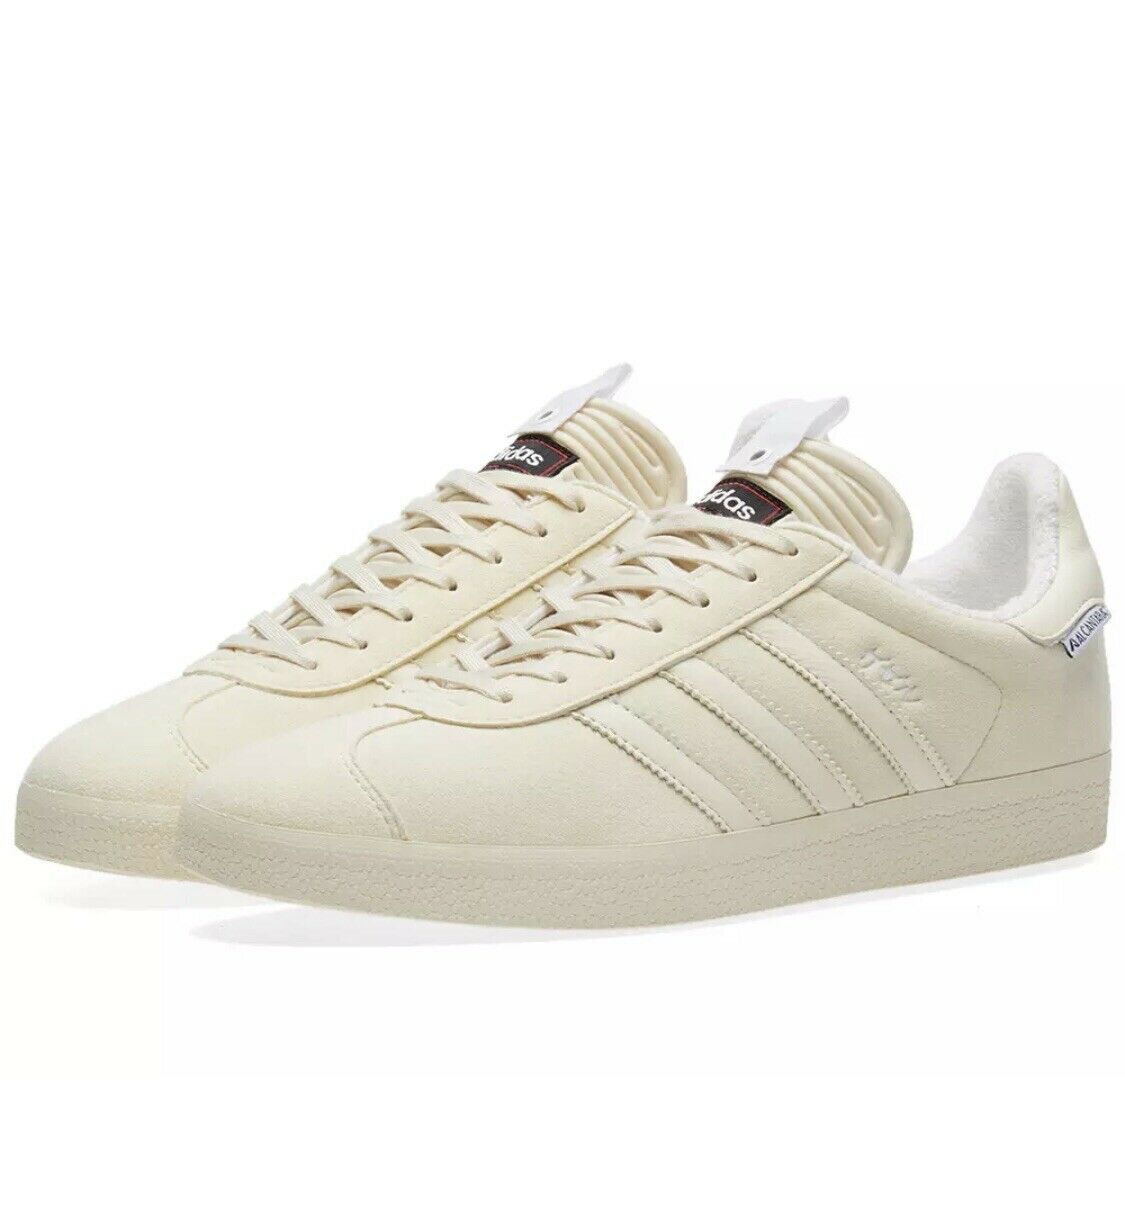 ADIDAS CONSORTIUM X UNITED ARROWS & SONS X SLAM JAM GAZELLE BEIGE